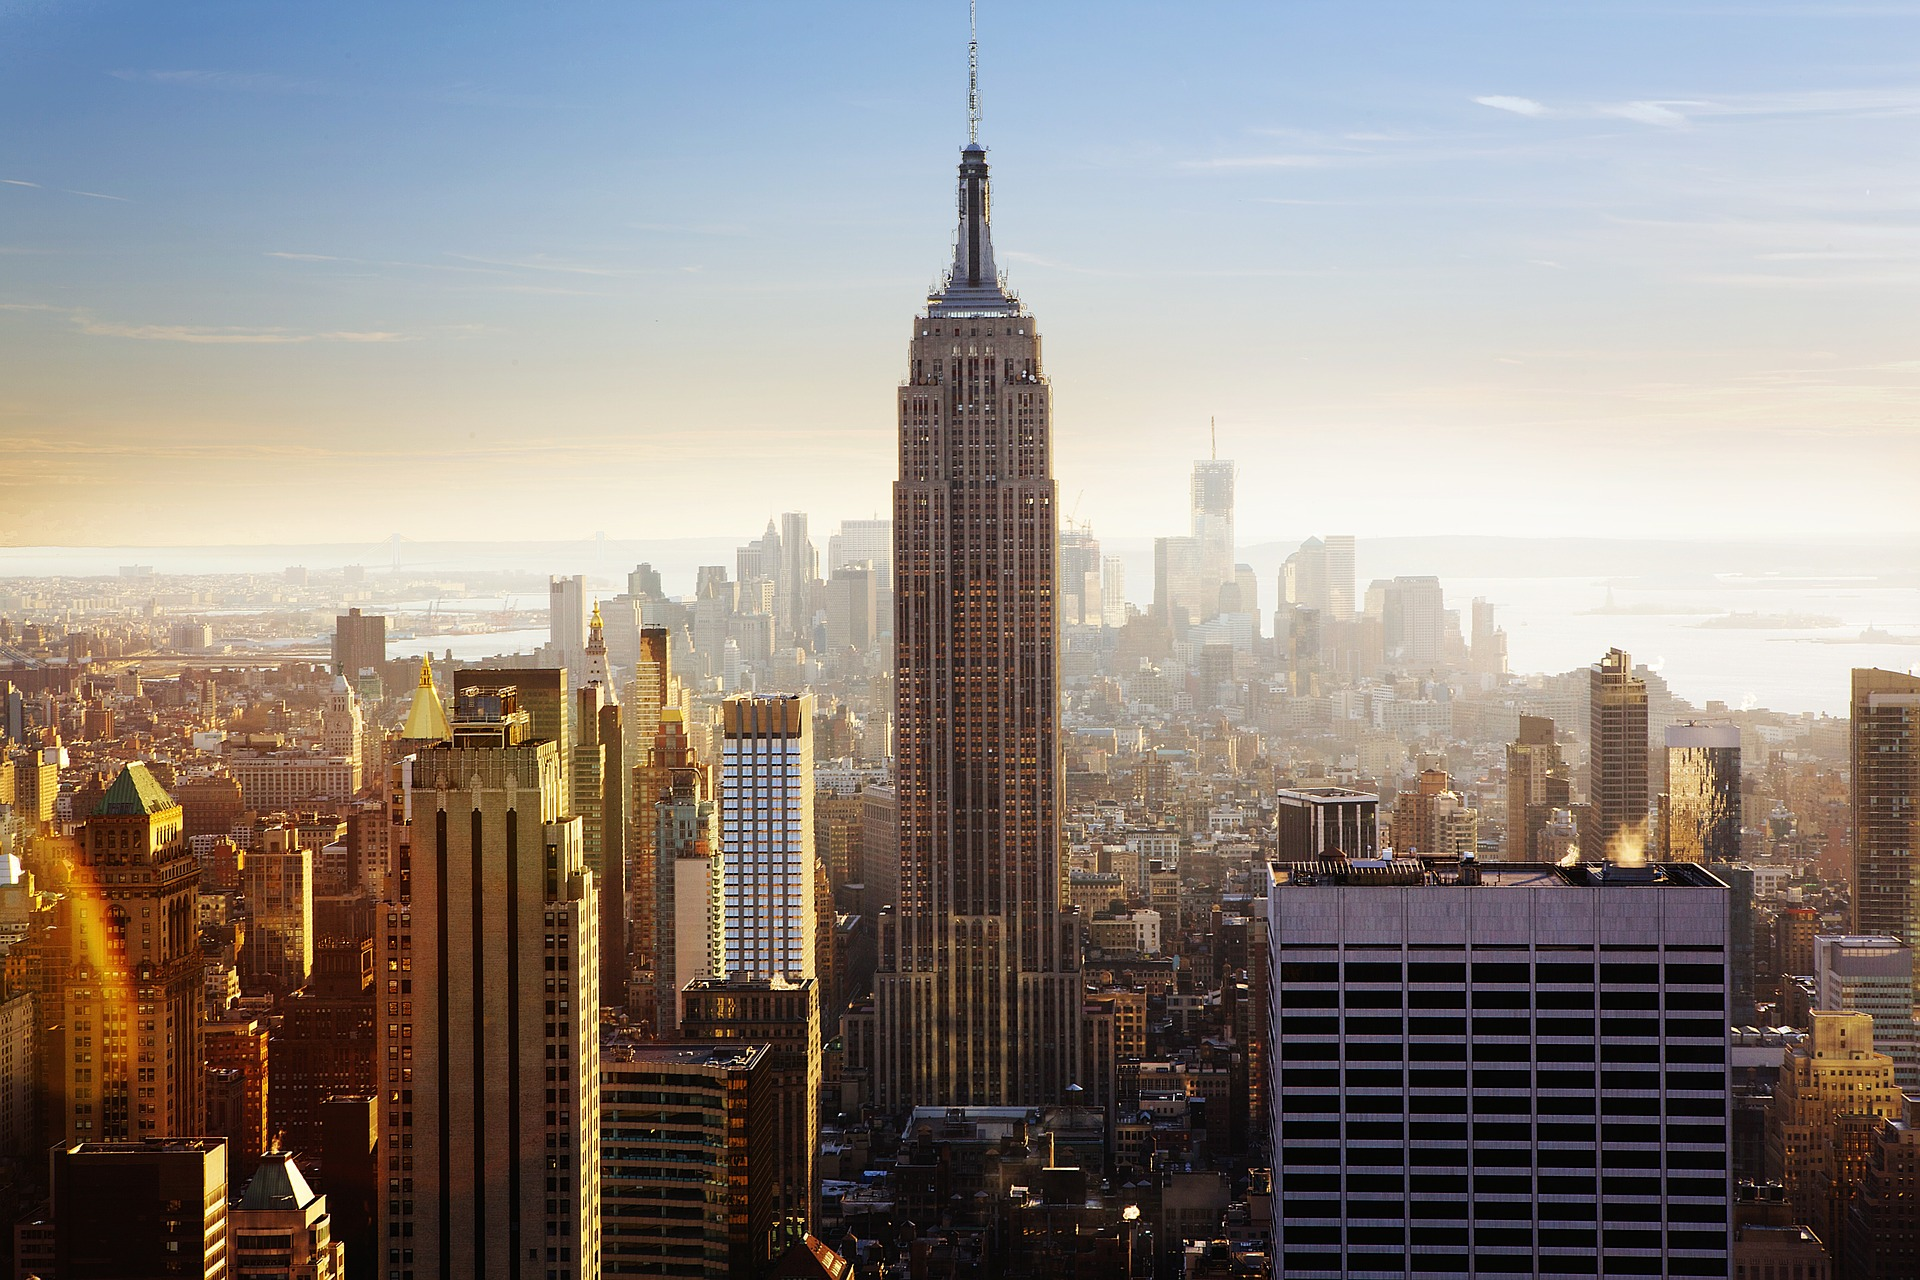 empire-state-building-1081929_1920.jpg